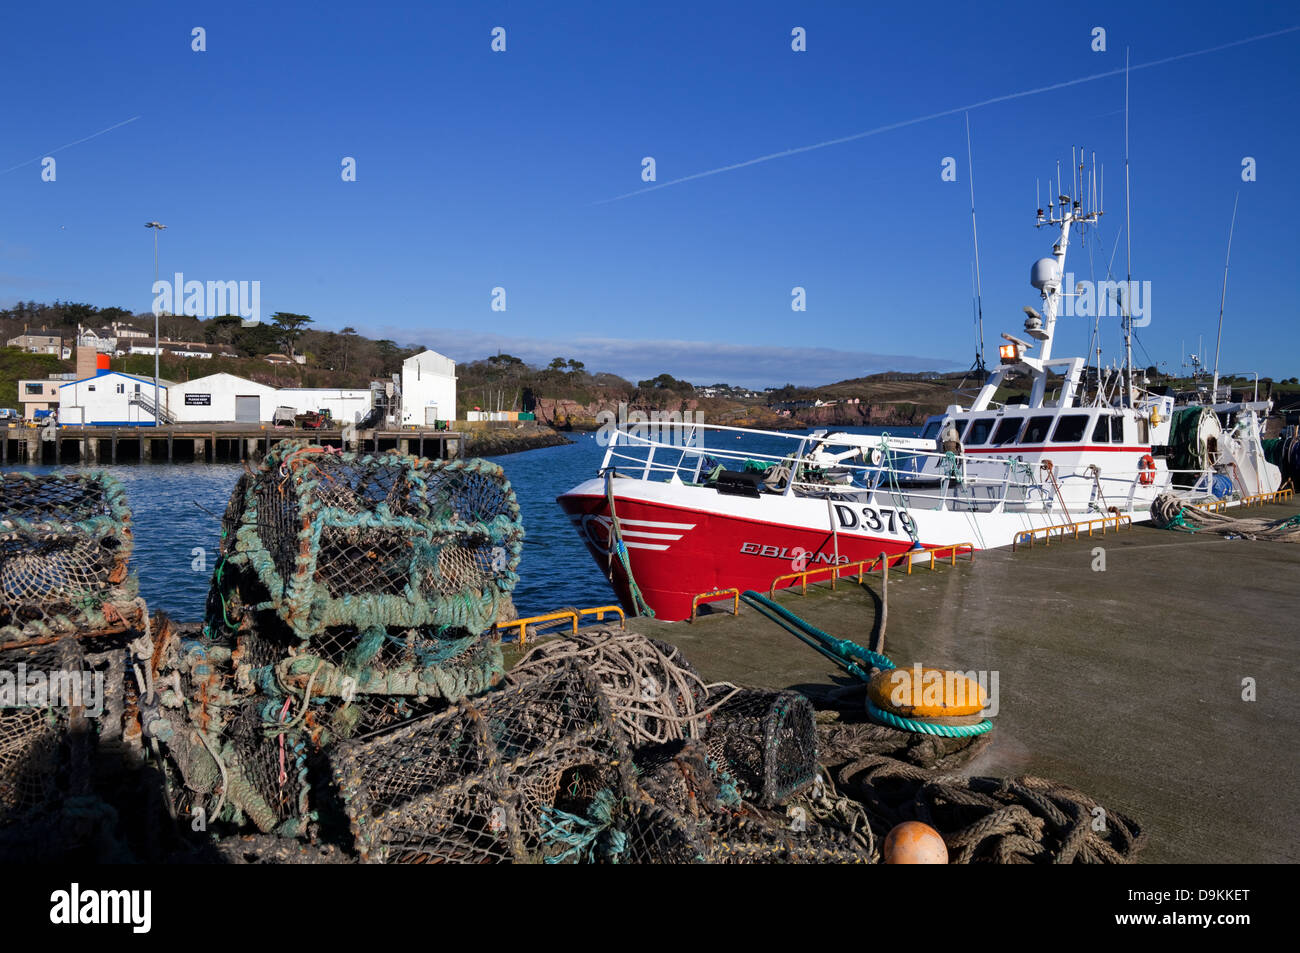 The Fishing Harbour, Dunmore East Fishing Port, County Waterford, Ireland - Stock Image